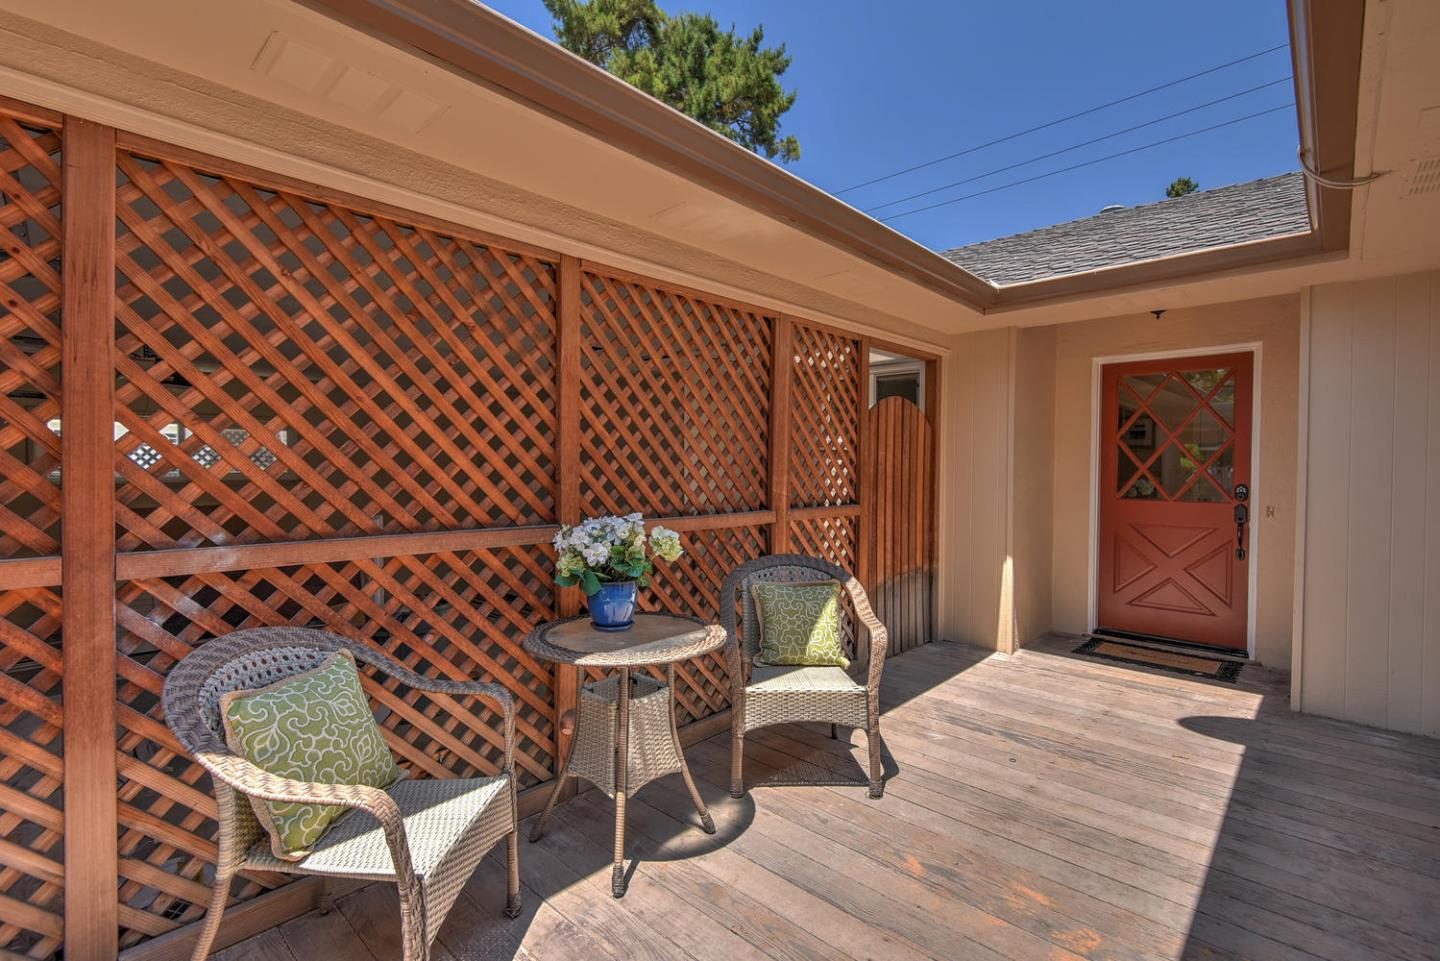 Additional photo for property listing at 1016 Tulane Drive  Mountain View, California 94040 Estados Unidos